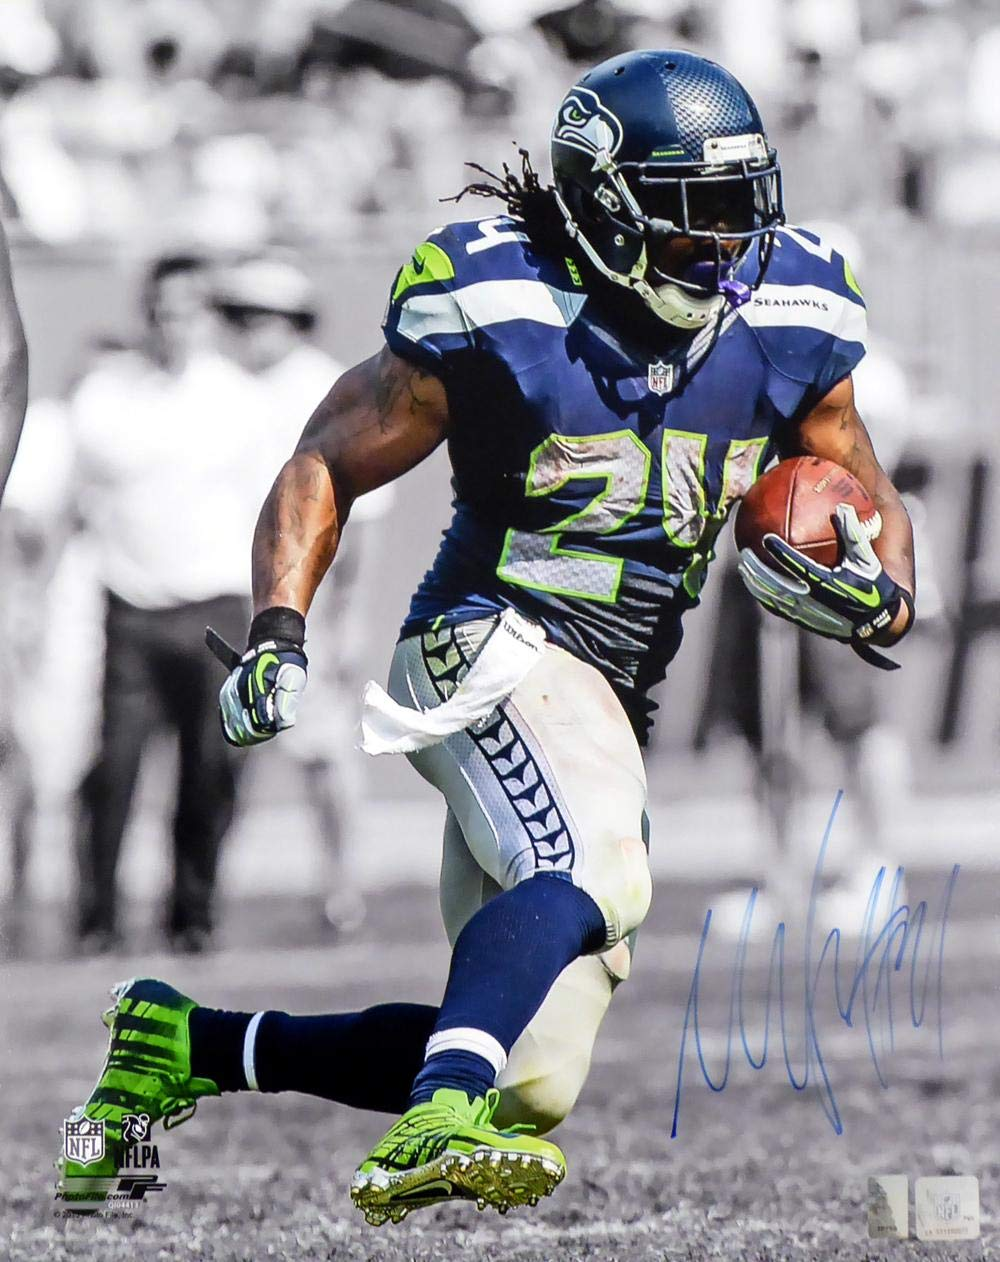 Signed Marshawn Lynch Photograph 16x20 Spotlight ML Holo Stock #130762 Autographed NFL Photos